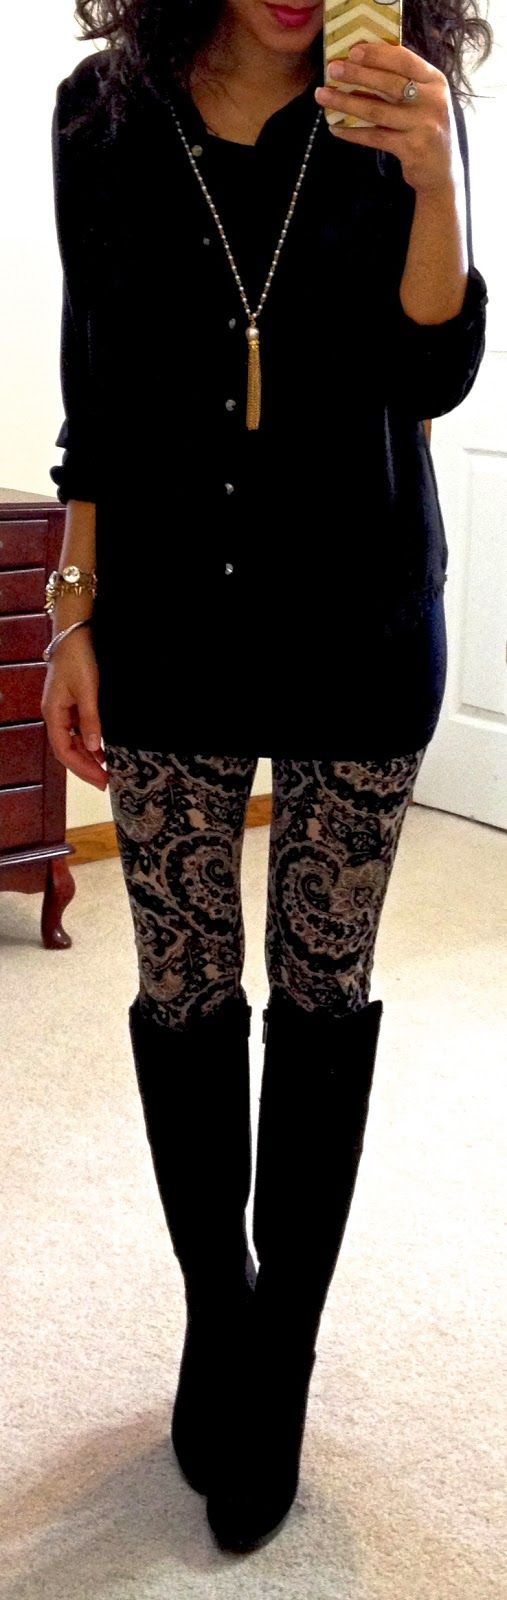 i have fun red snakeskin leggings that would be perfect!